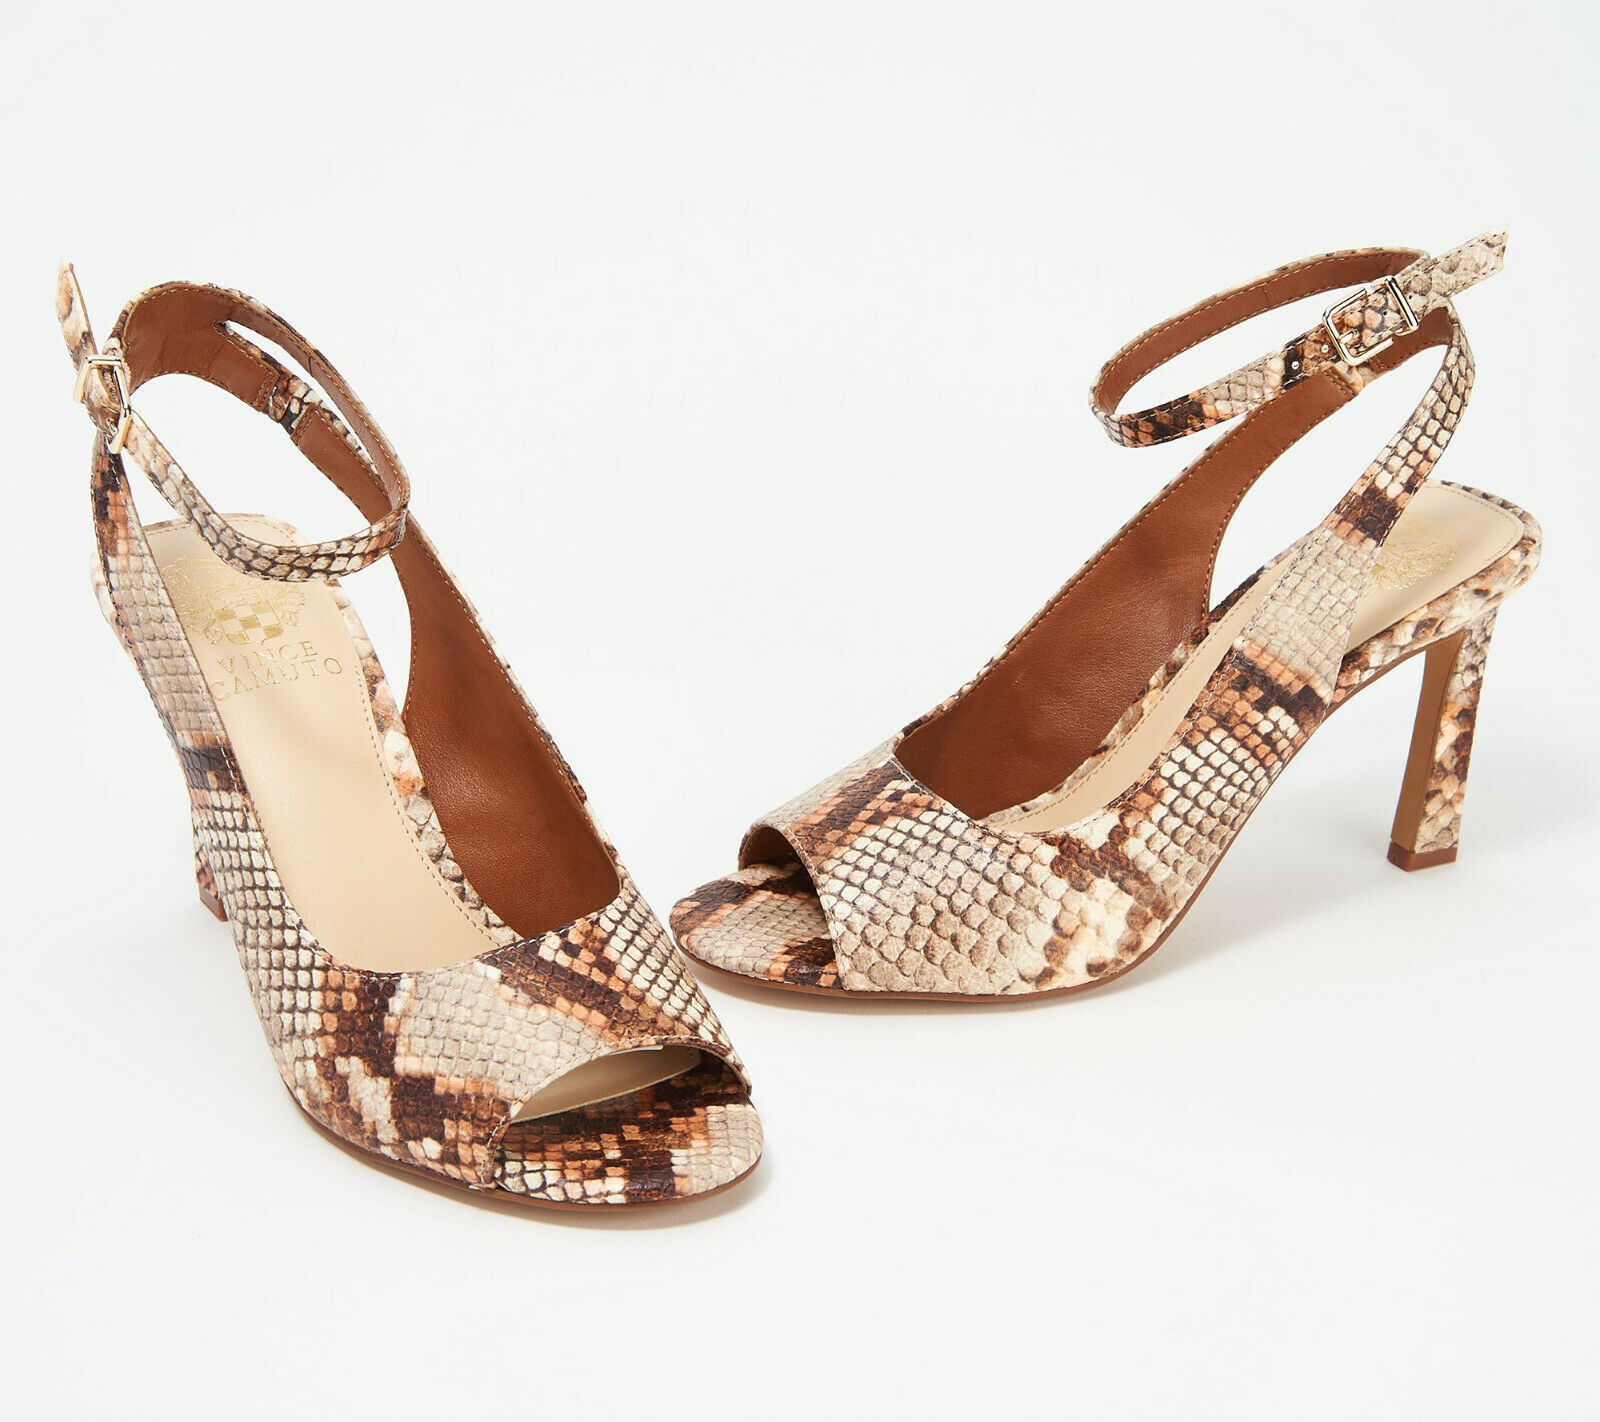 Primary image for Vince Camuto Heeled Peep Toe Sandals - Rateema Sienna 11 M